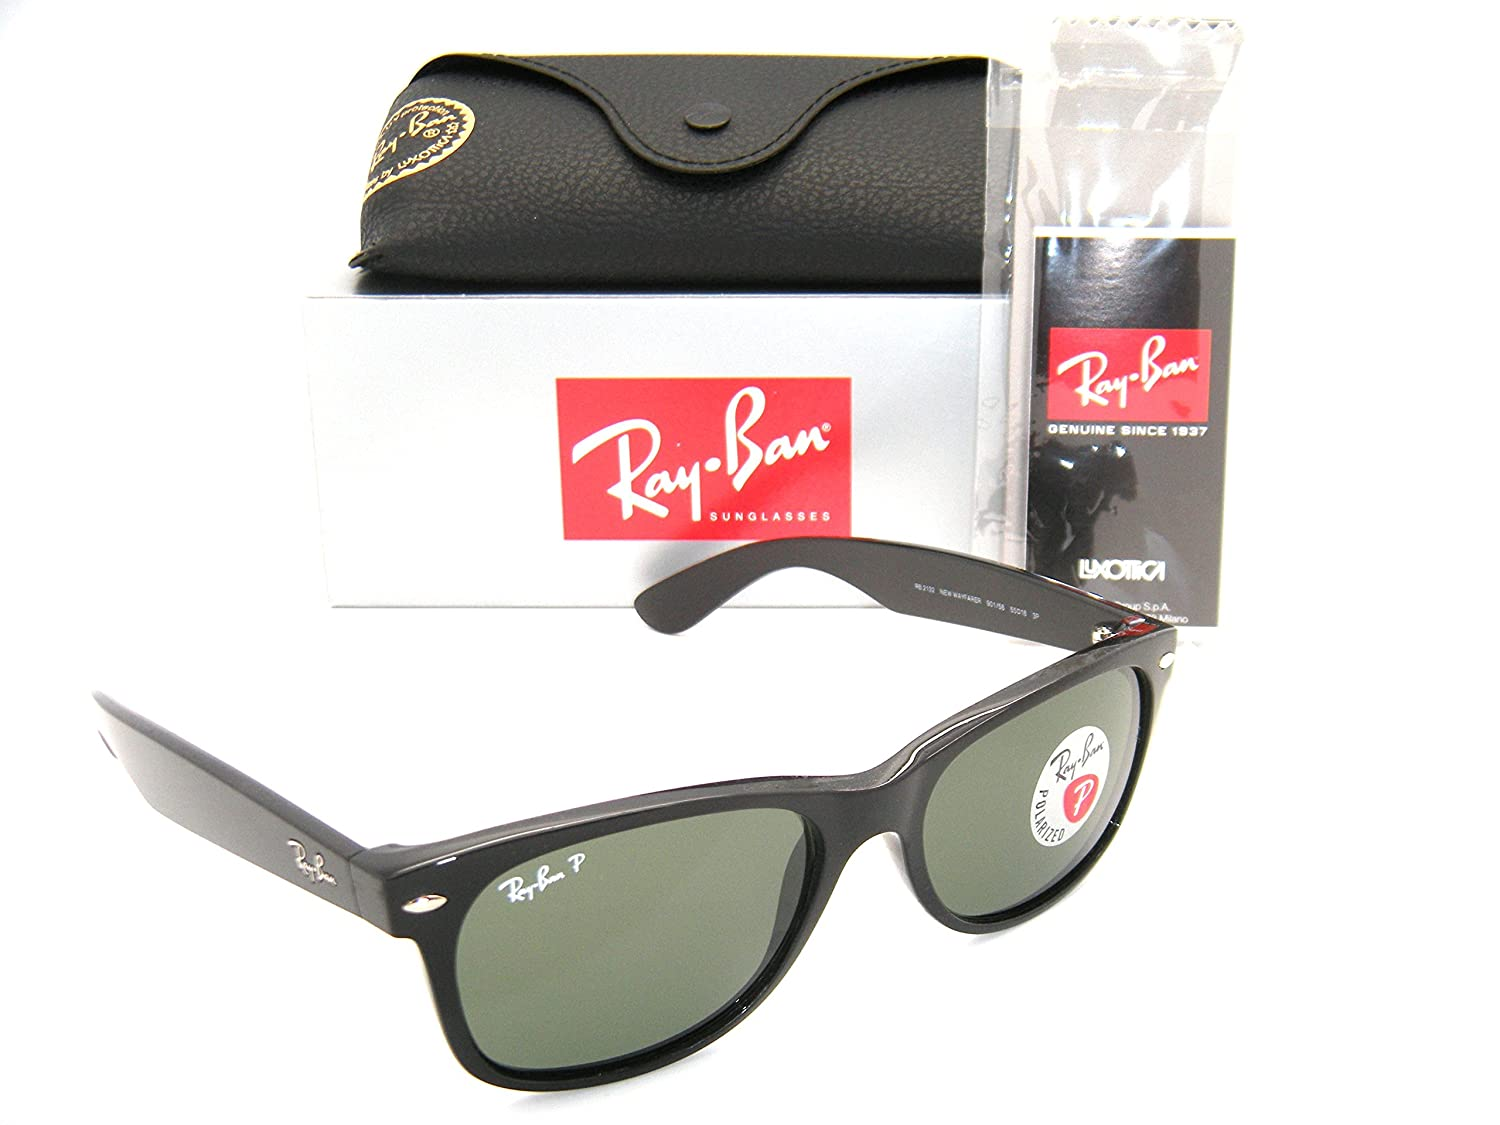 a931a0739e Amazon.com  Ray-Ban New Wayfarer RB 2132 901 58 55mm Large Black Frame with  Polarized Lenses  Shoes